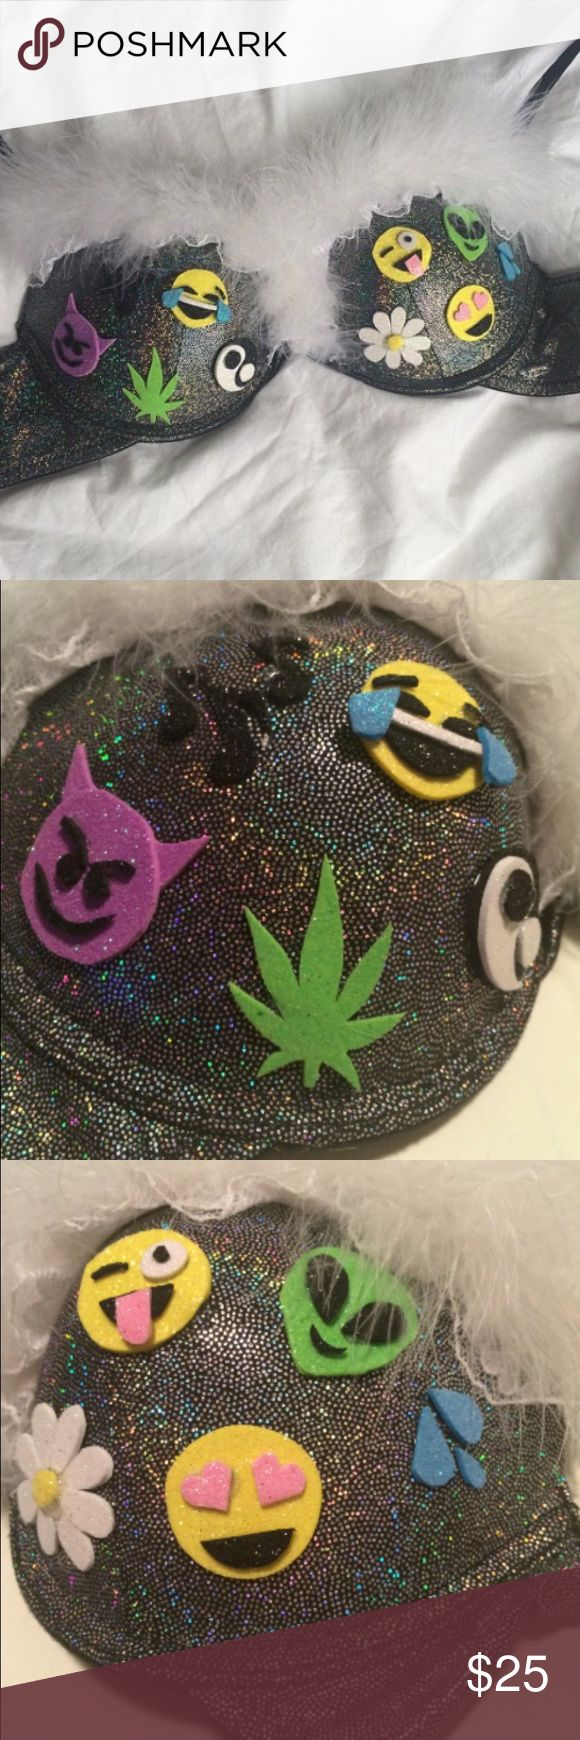 Hologram Emoji Rave Bra Embellished bra perfect for any event, festival, party, or costume! Push up with racerback convertible straps. Size 34B/32C Intimates & Sleepwear Bras